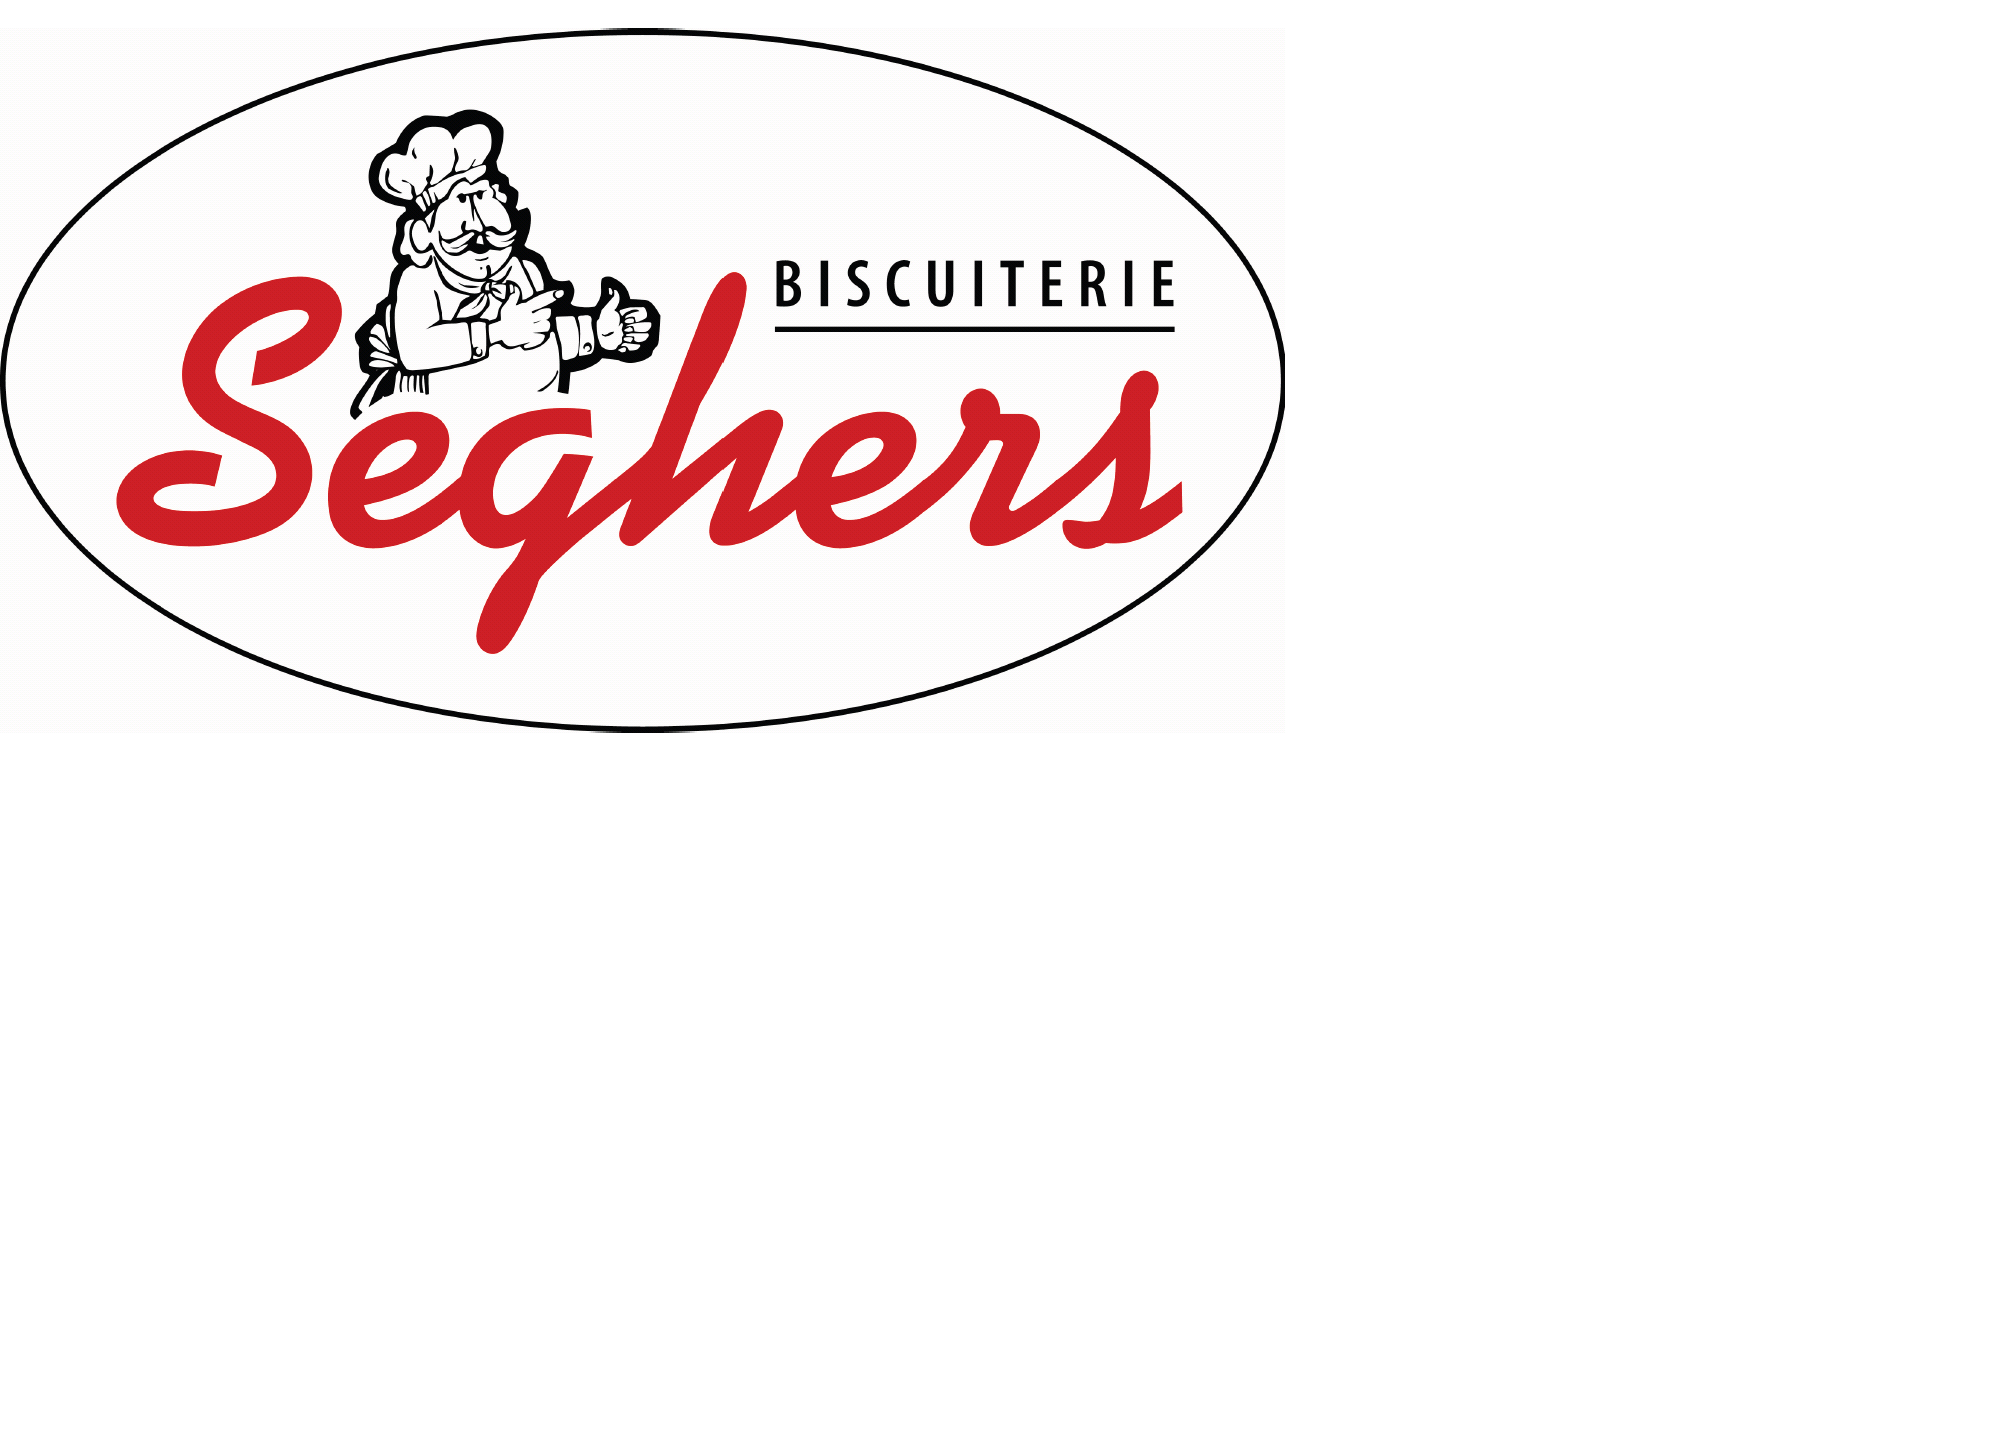 Biscuiterie Seghers